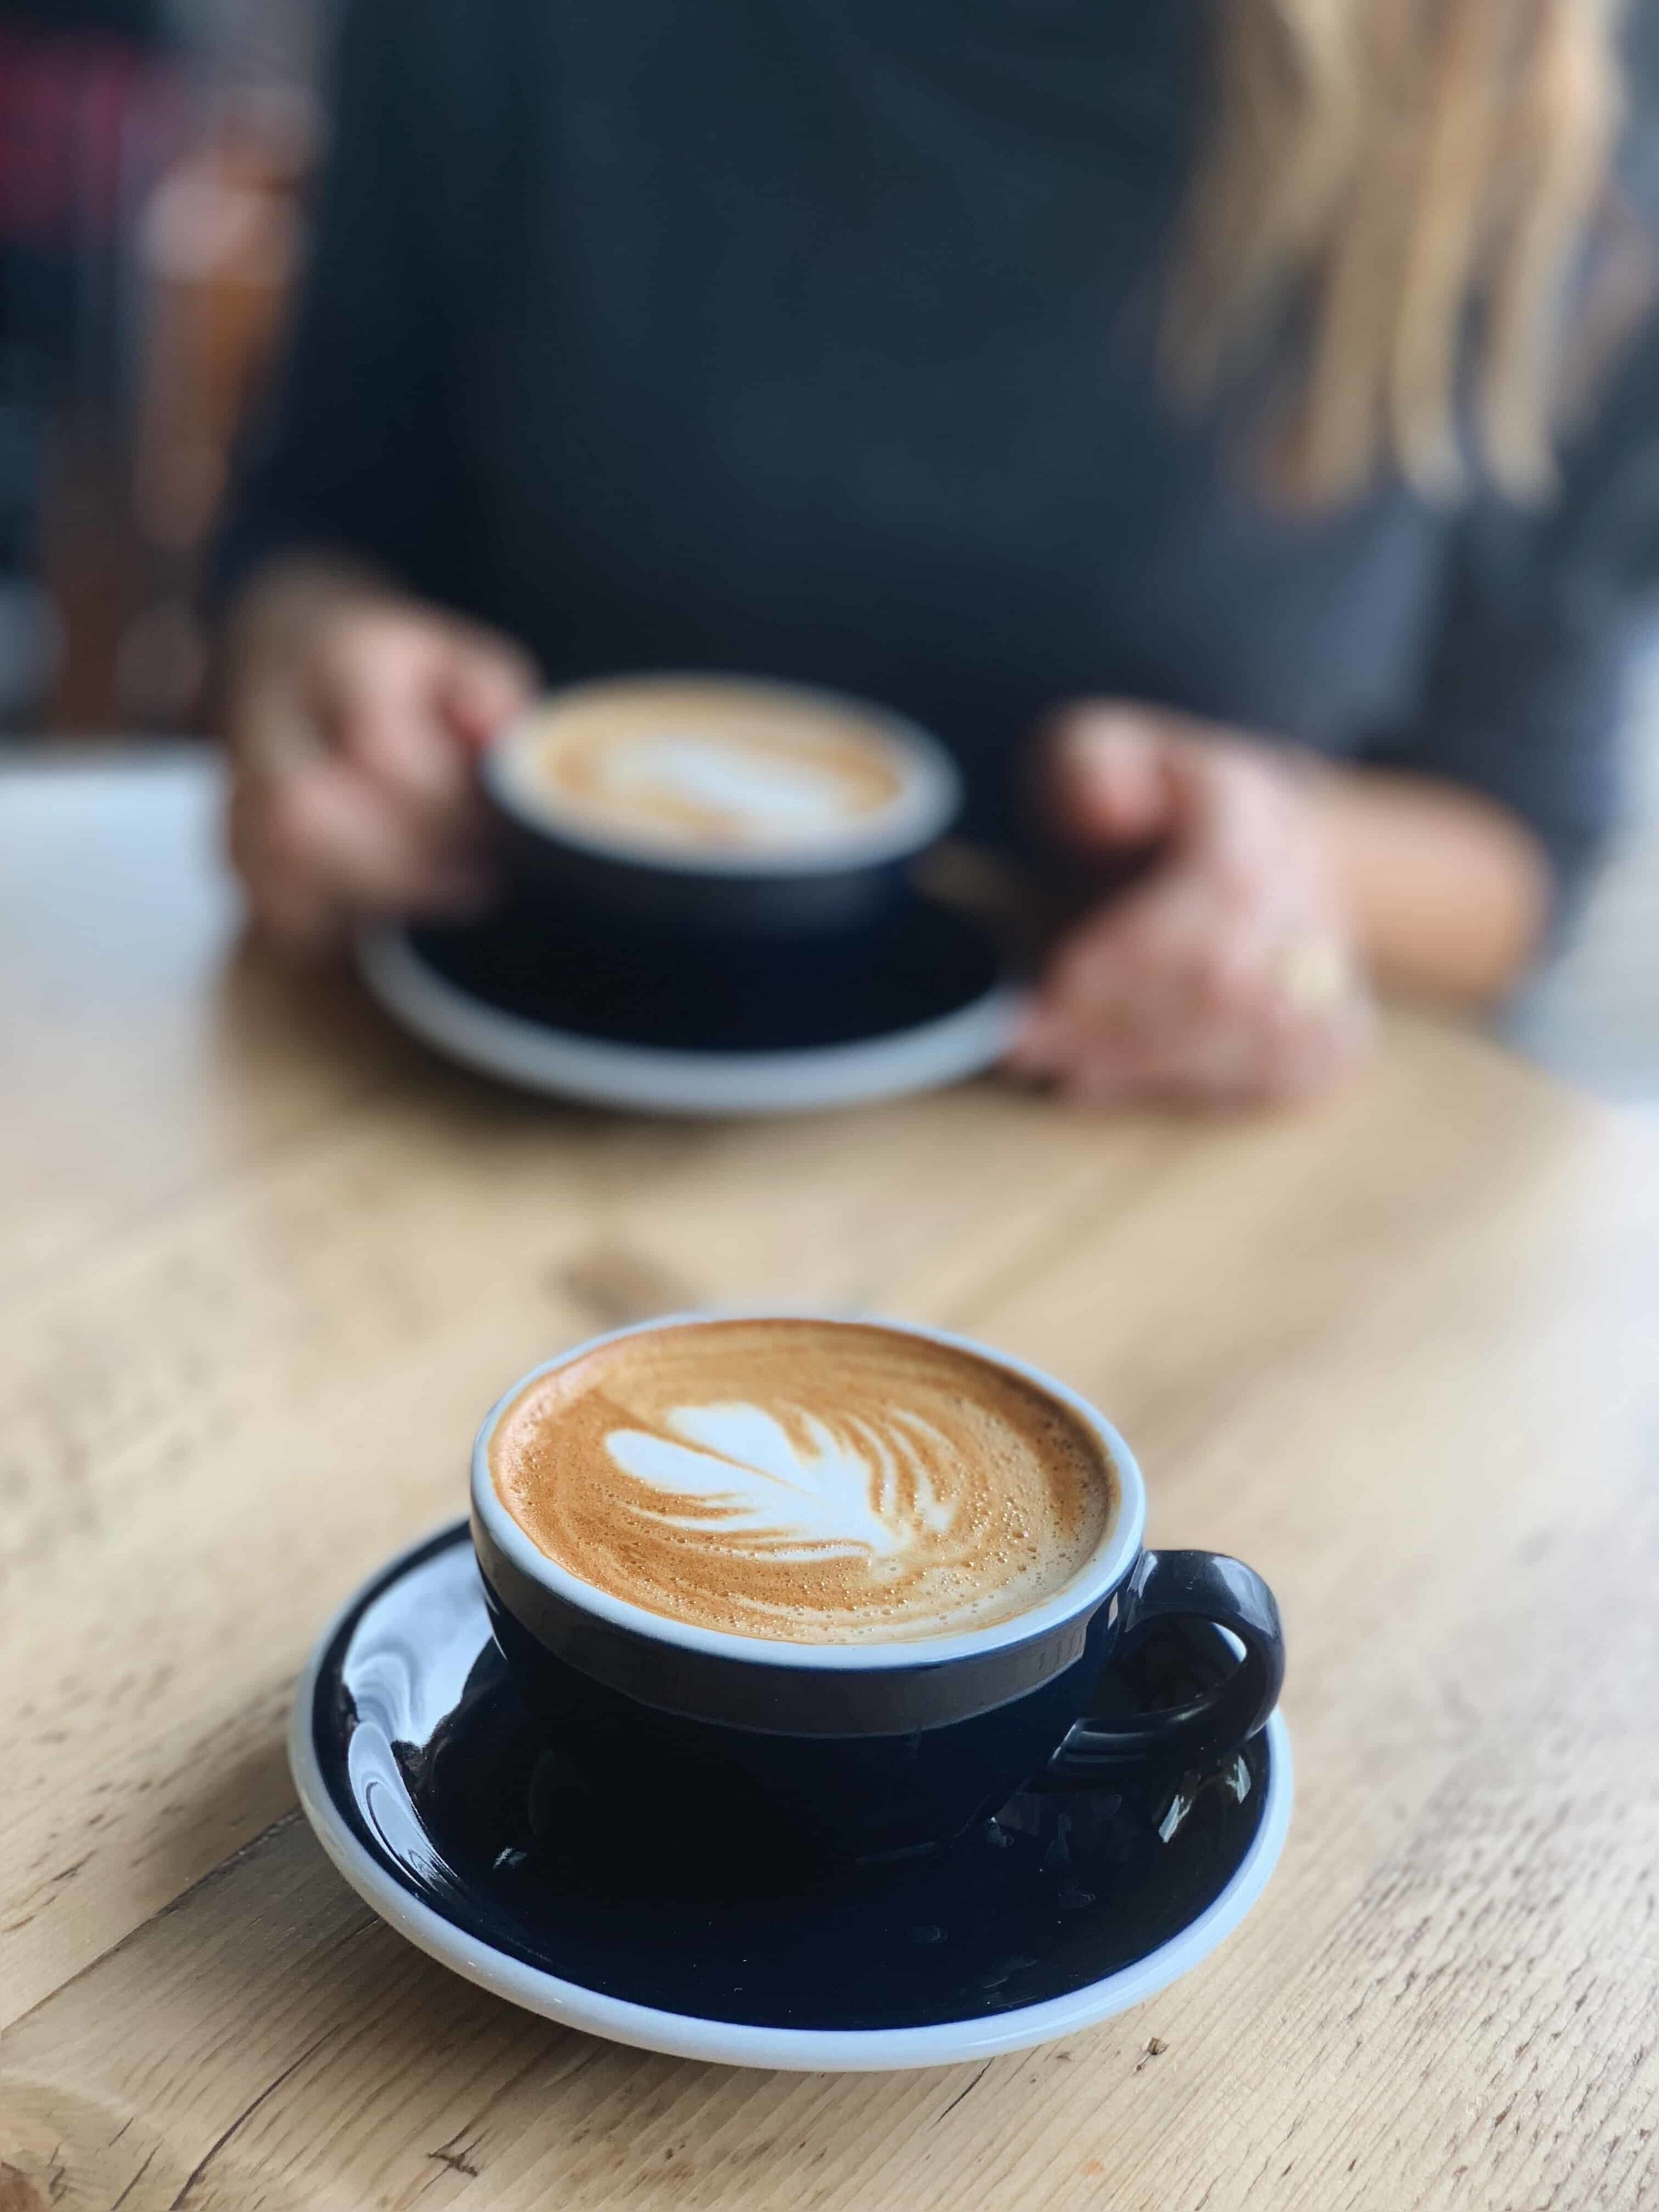 Delicious oat milk flat white coffee